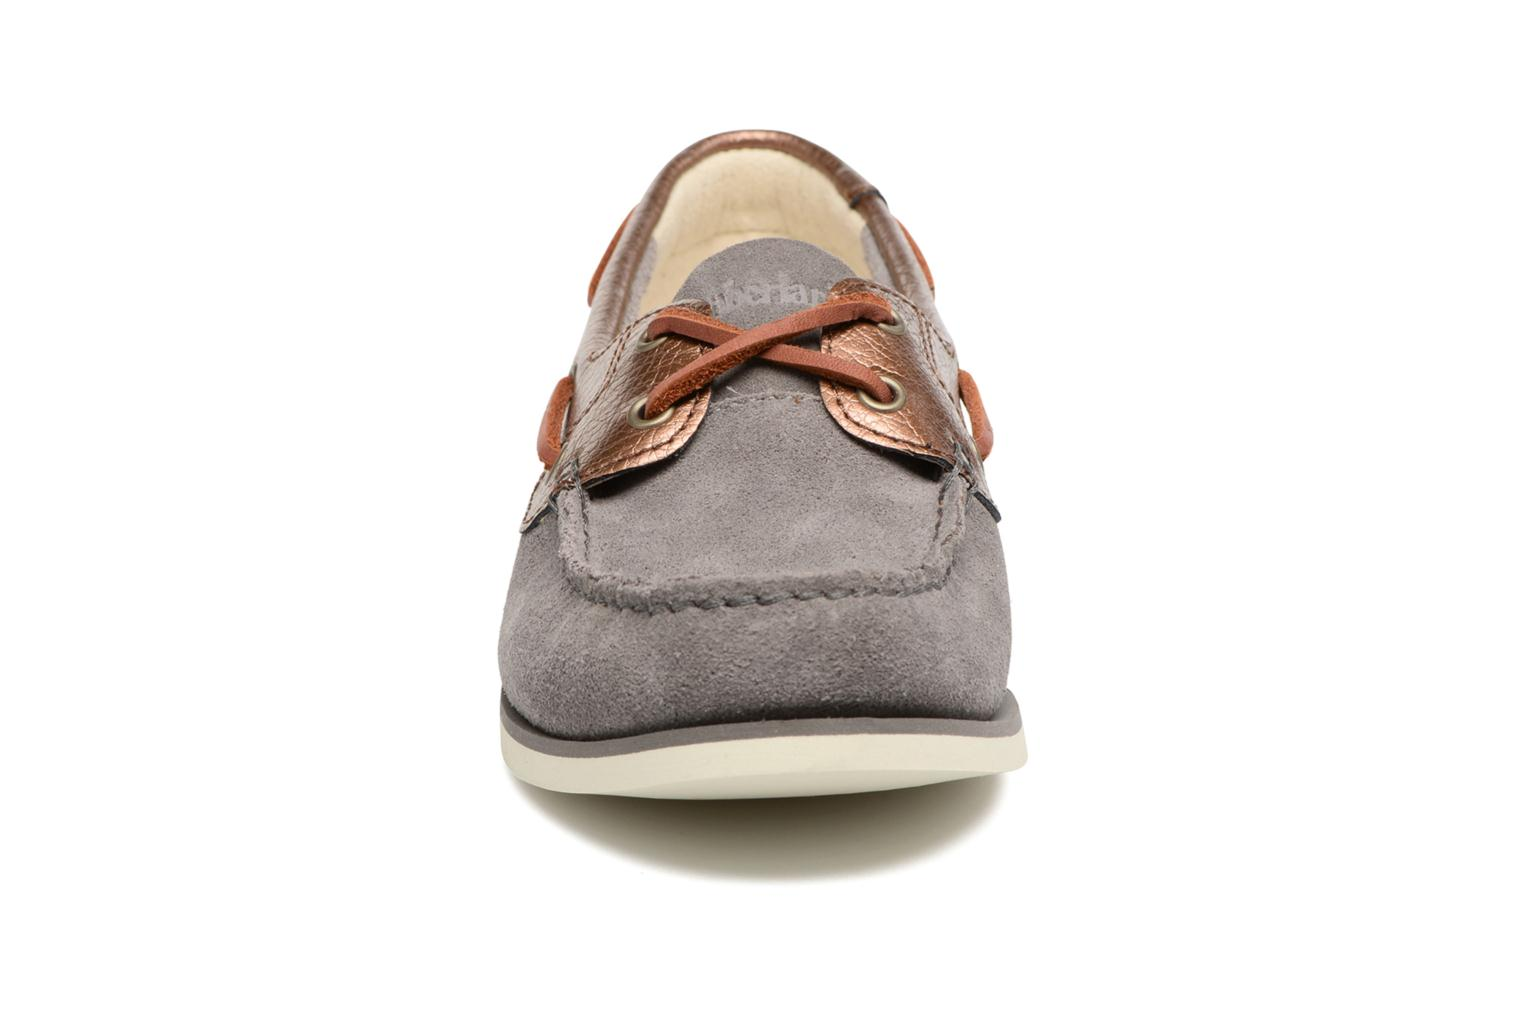 Chaussures à lacets Timberland Classic Boat Unlined Boat Gris vue portées chaussures